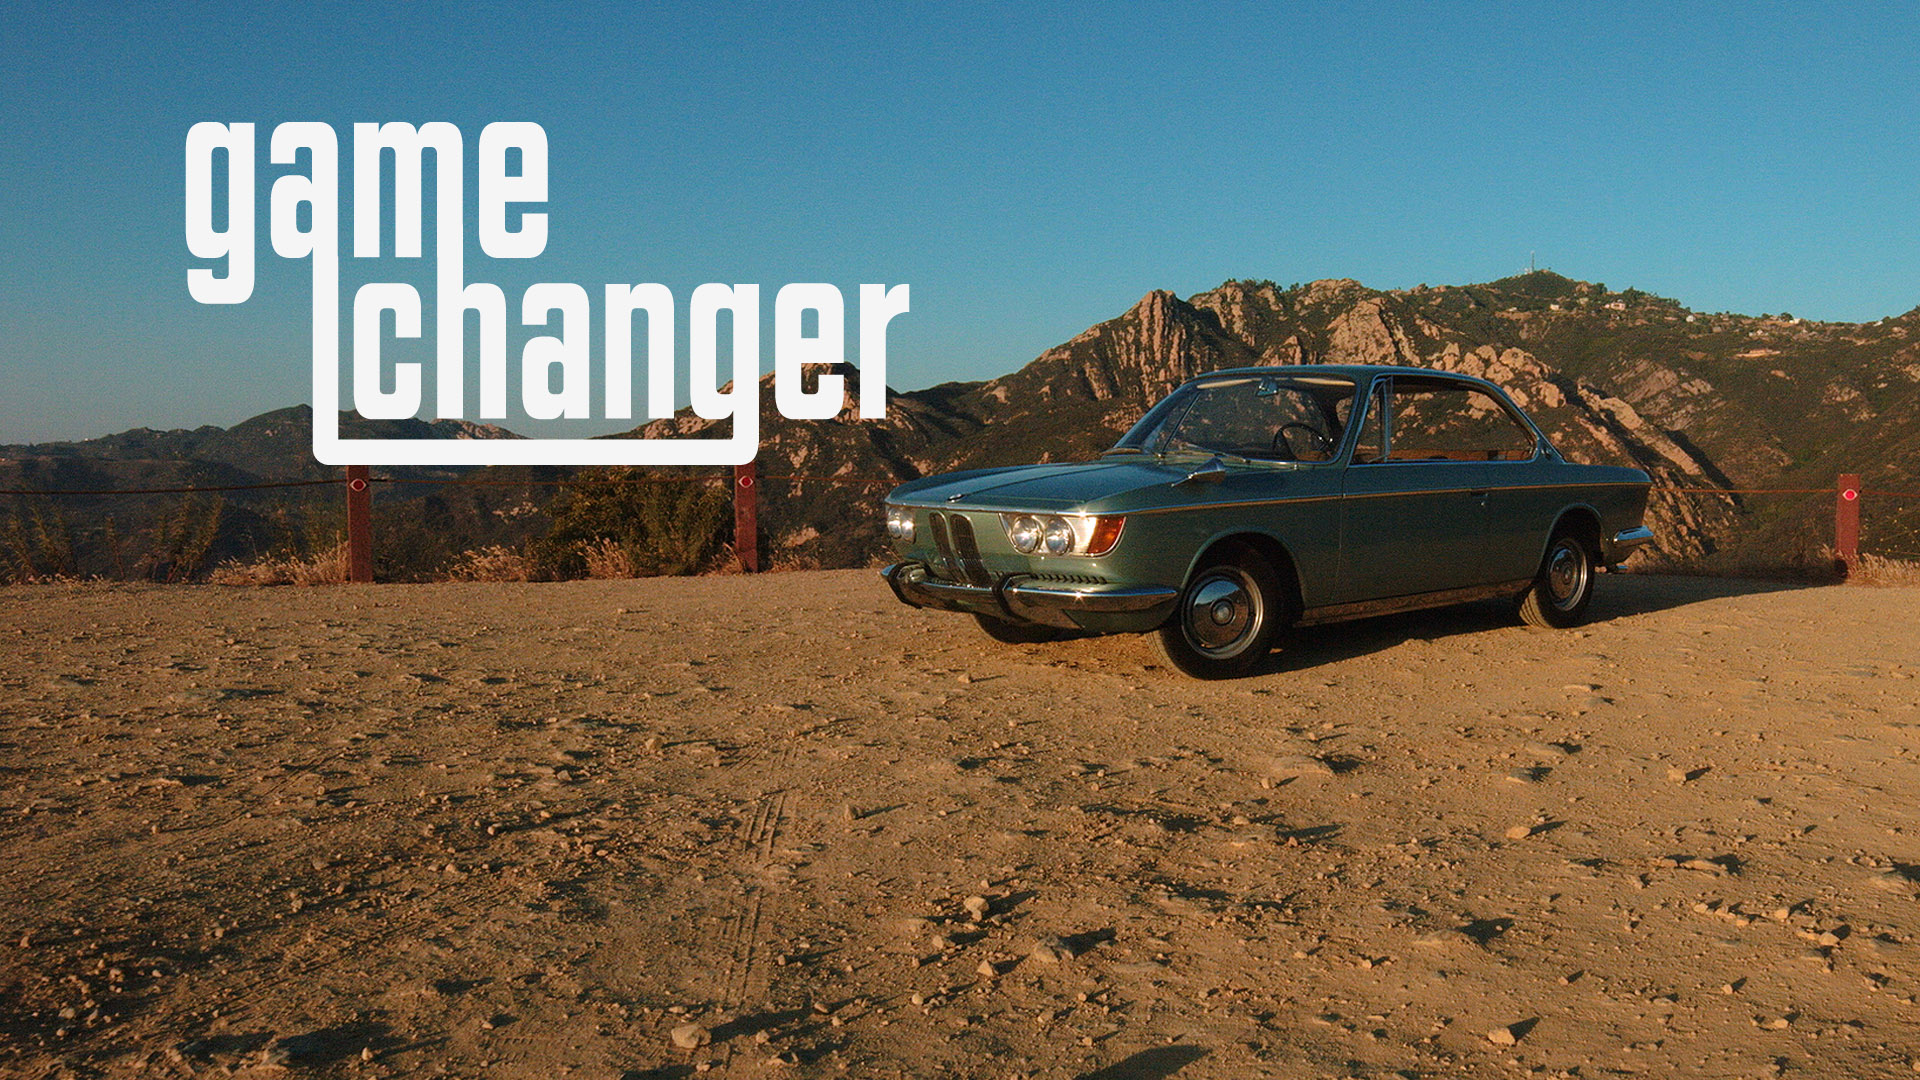 This BMW 2000 CA Was A Game Changer